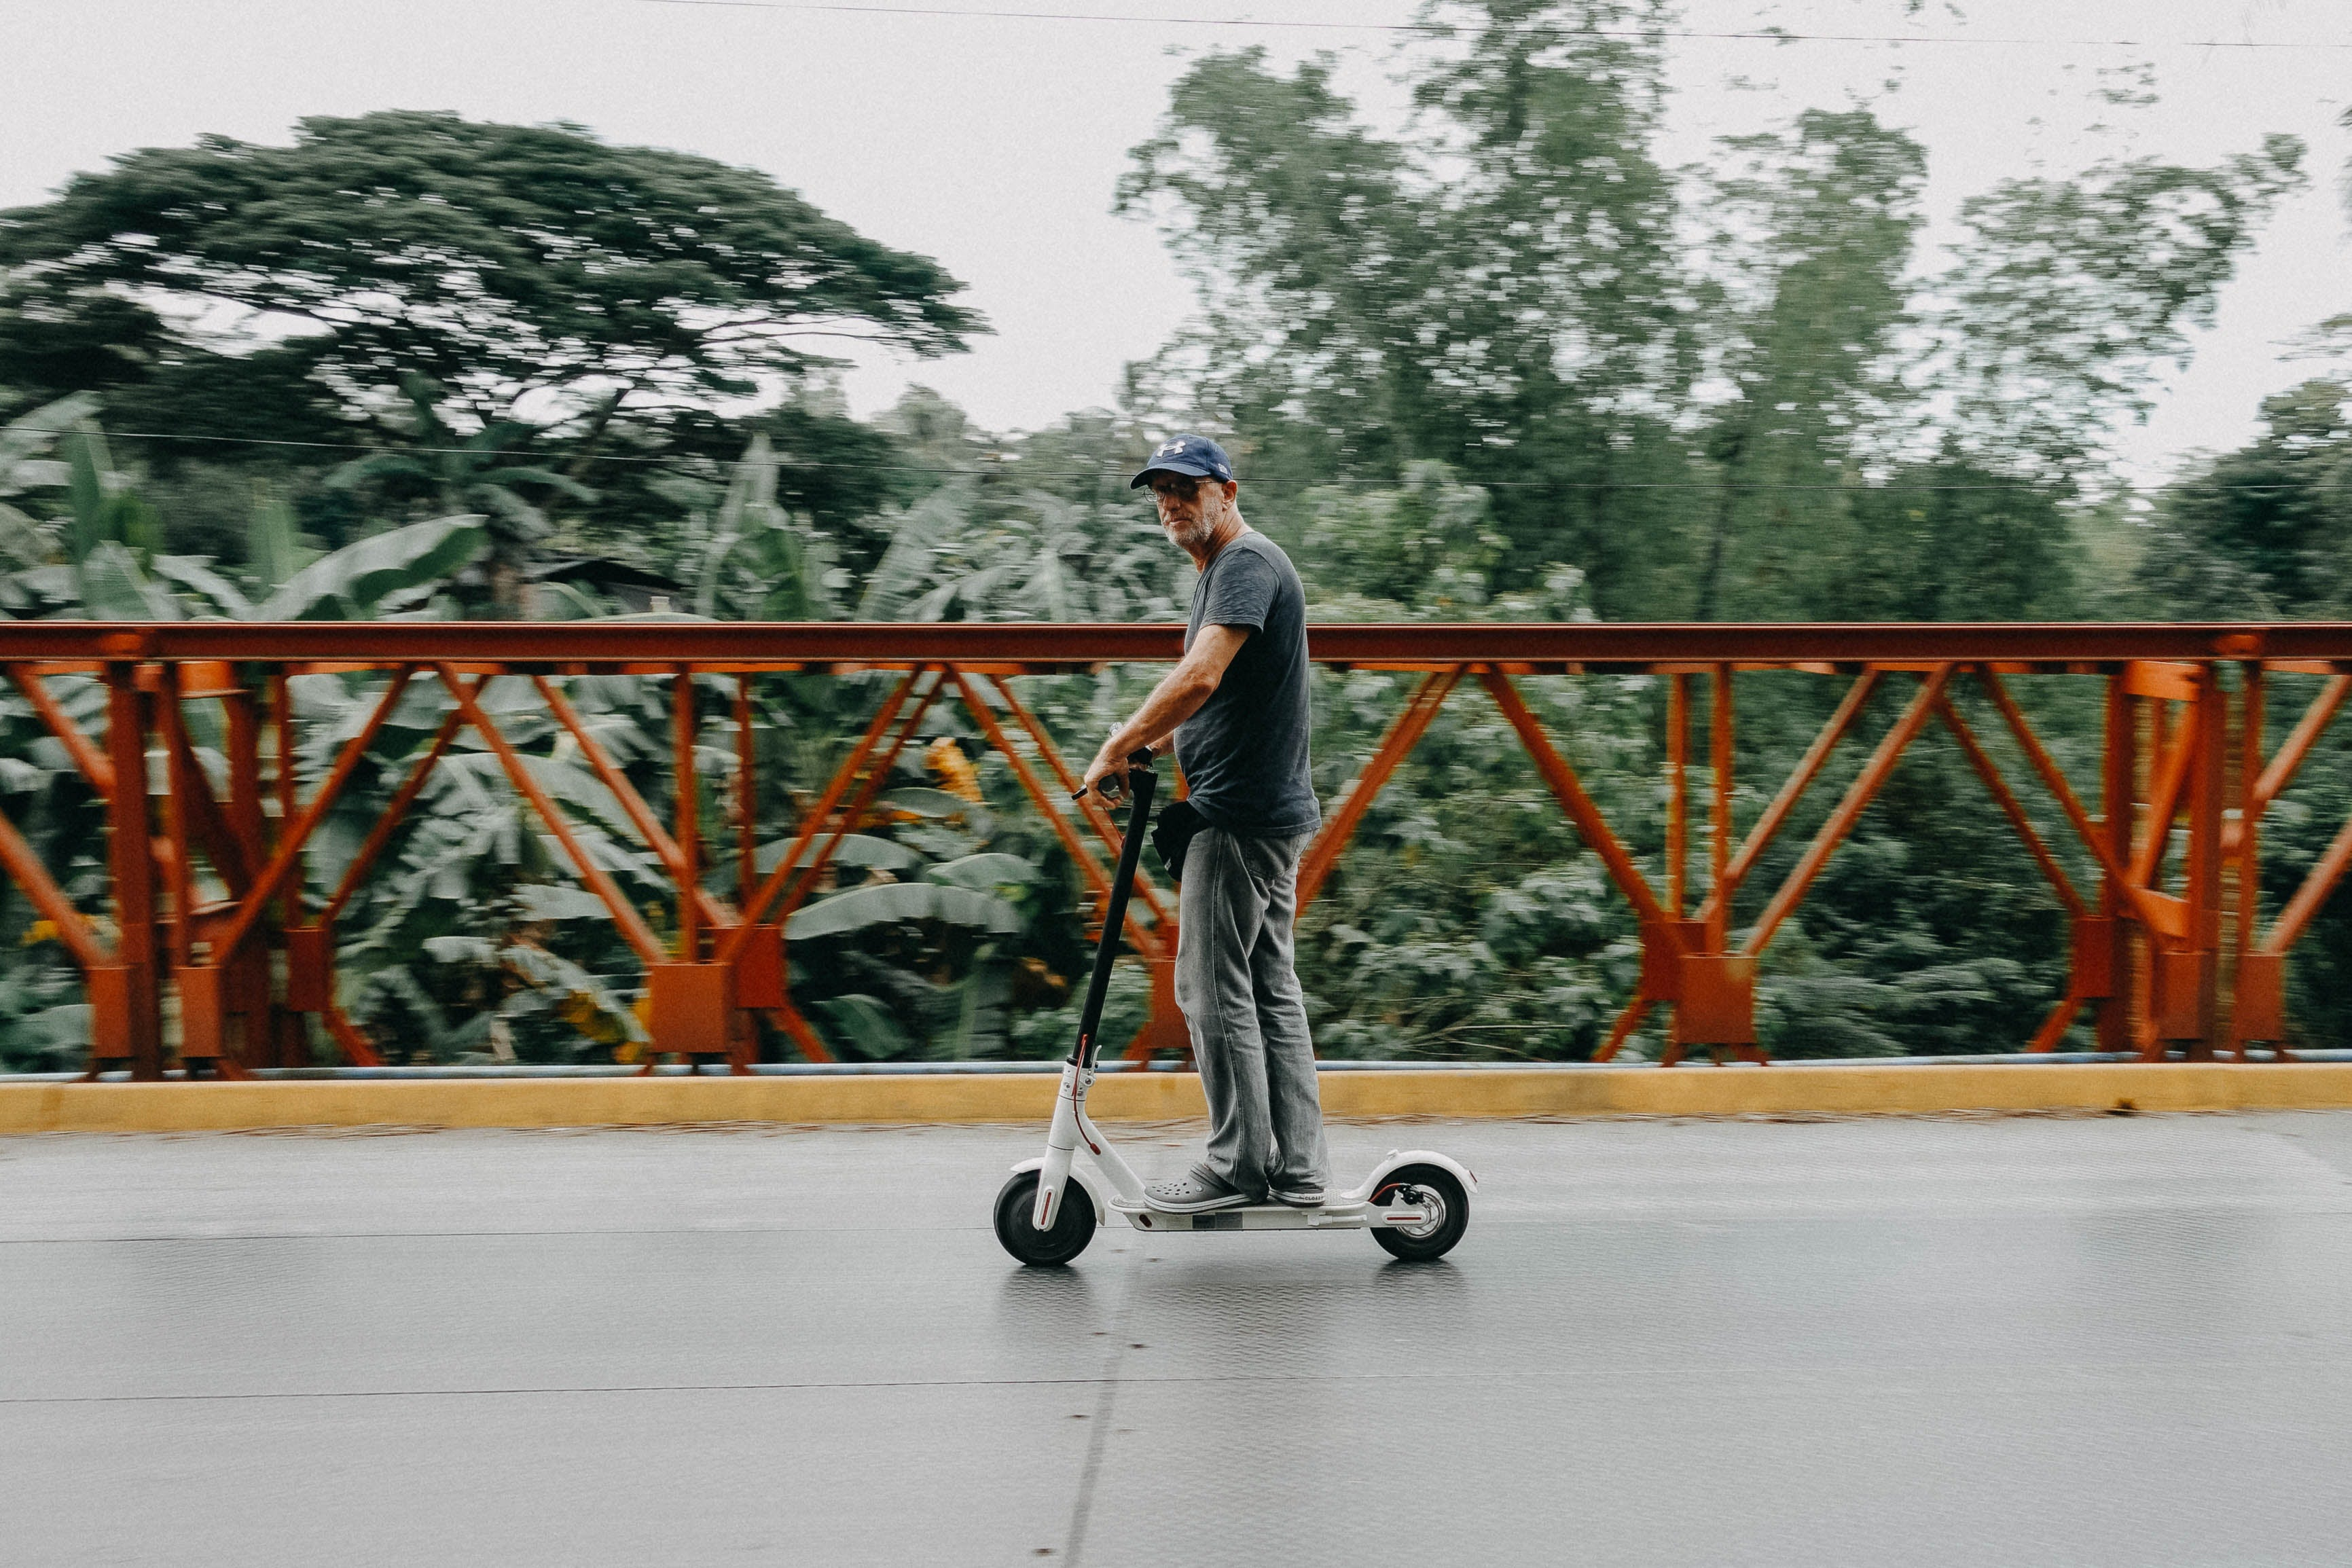 E-scooters to be permitted on public roads, cycle lanes and tracks.